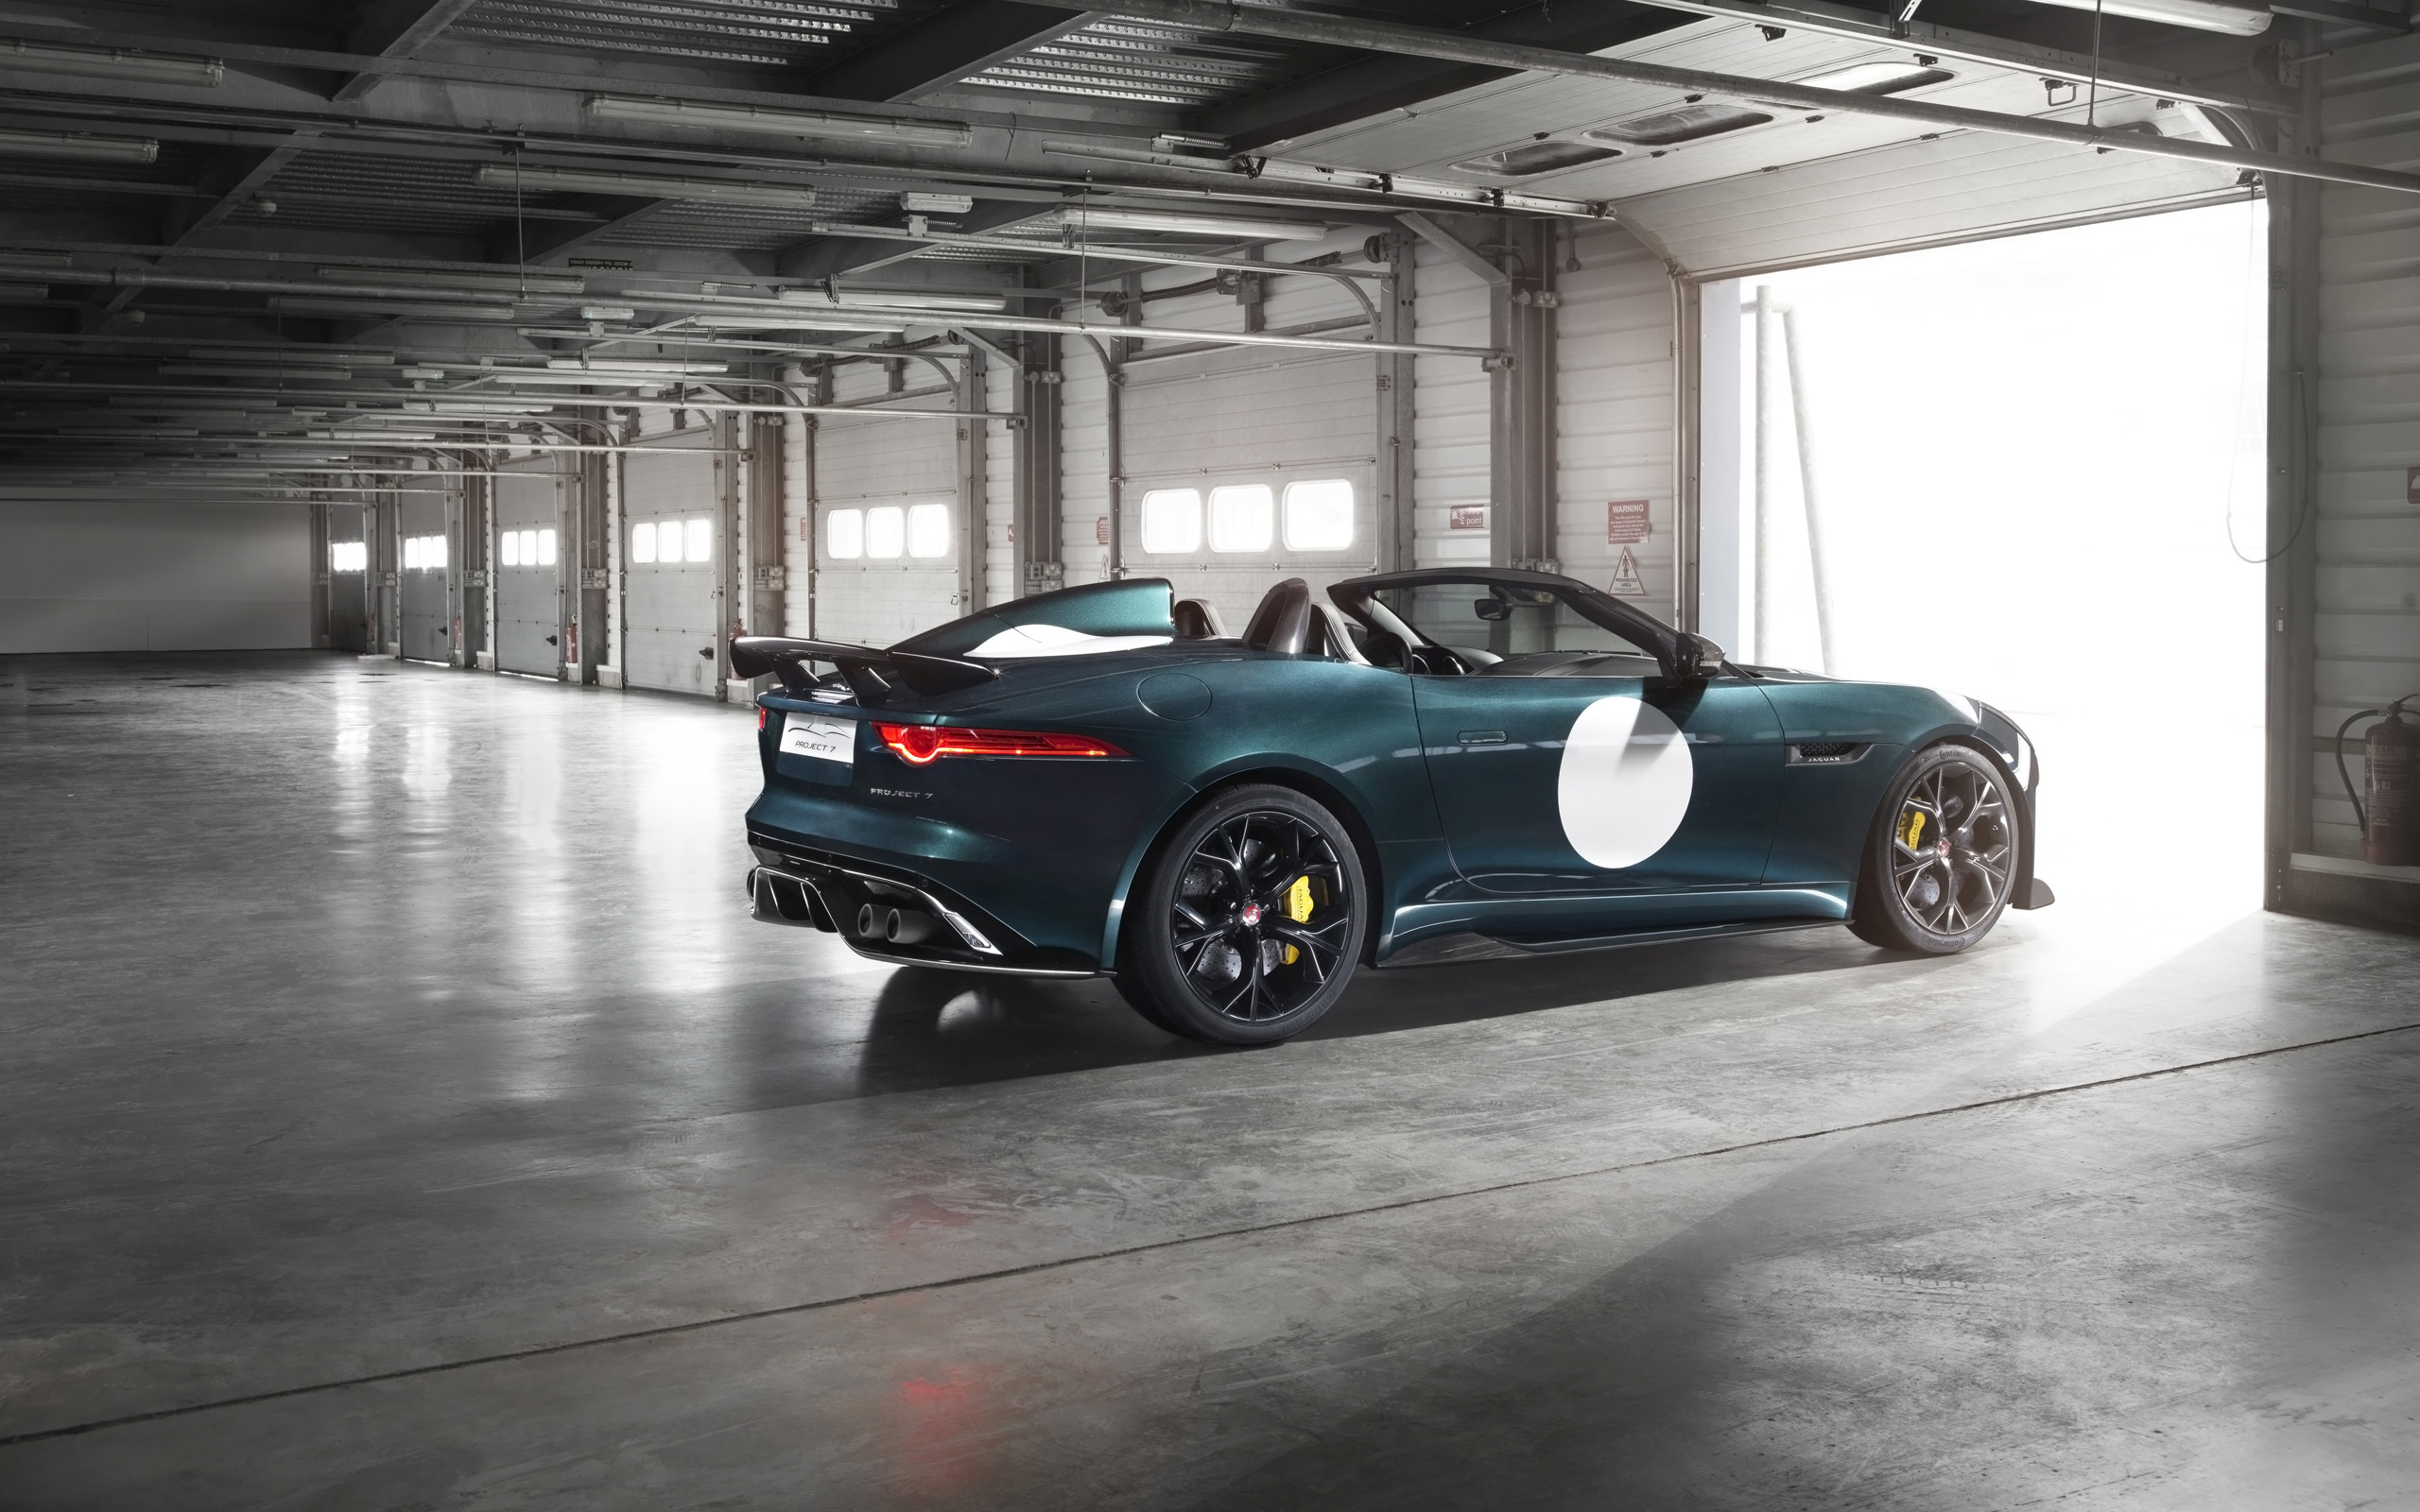 jaguar f type project 7 2015 2 wallpaper hd car wallpapers id 4640. Black Bedroom Furniture Sets. Home Design Ideas